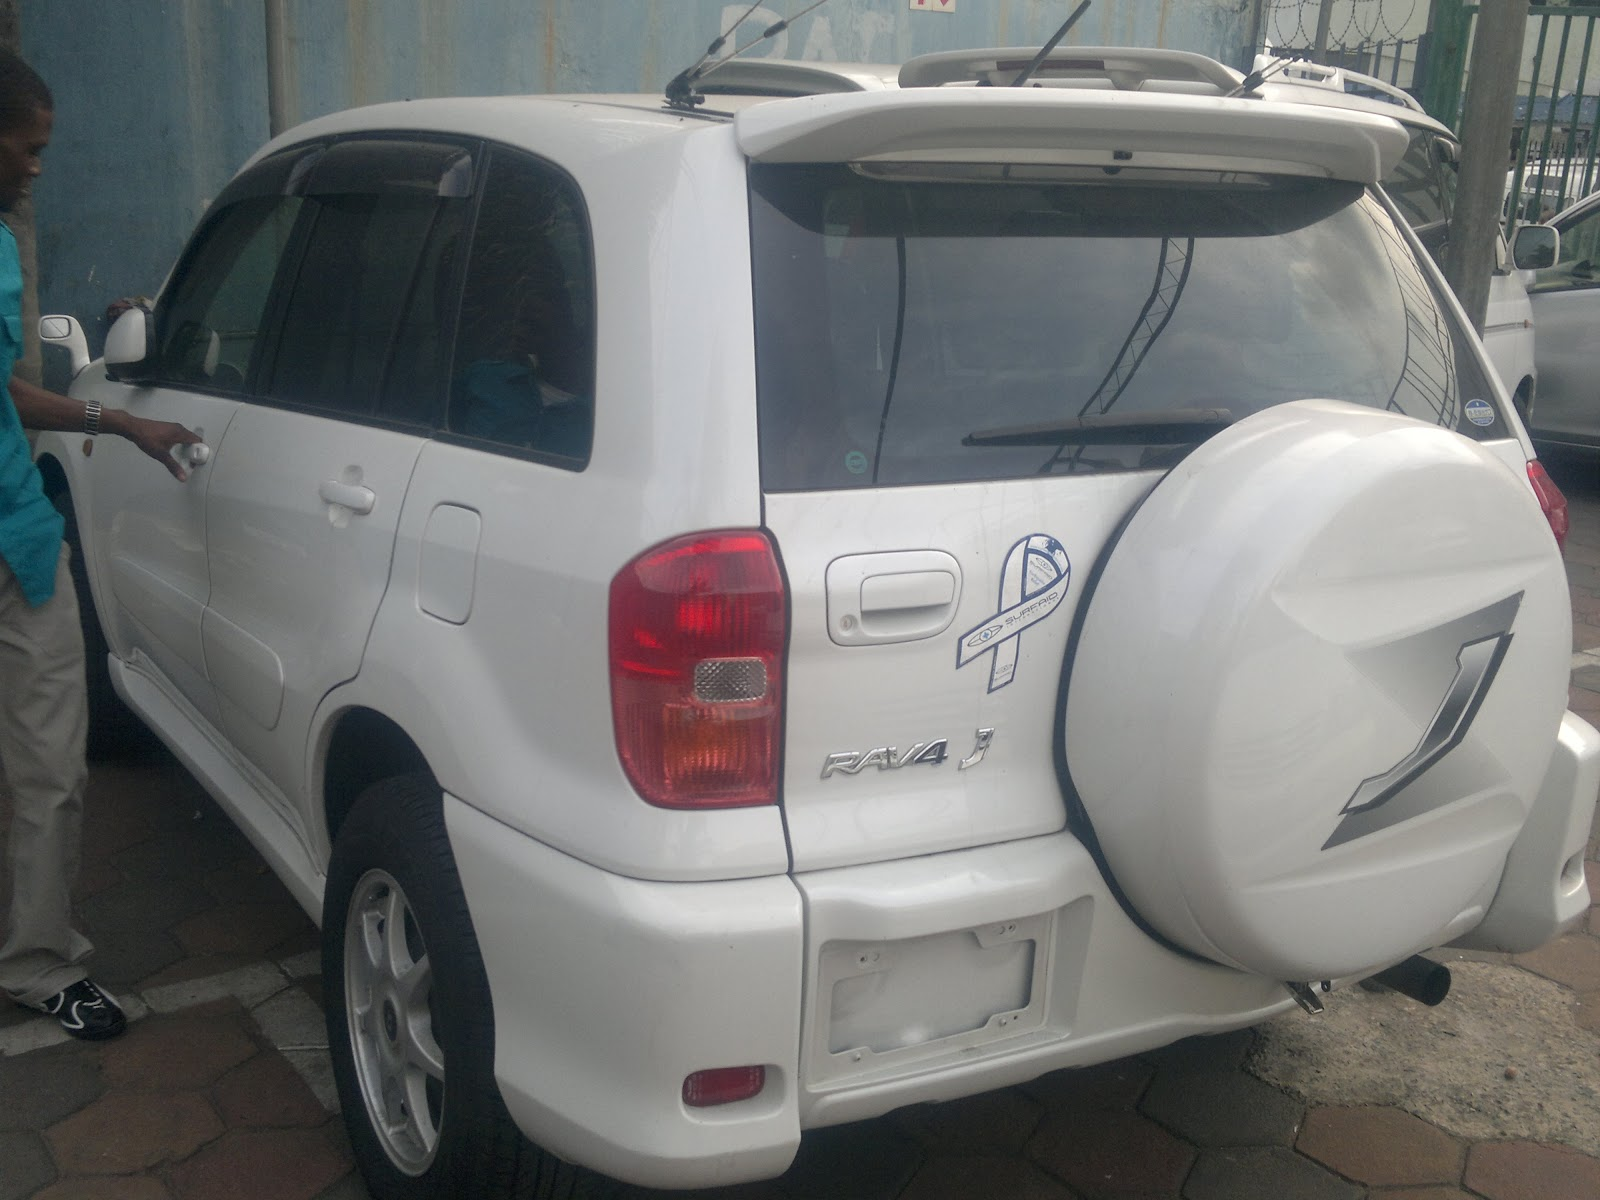 Affordable Used Cars Lovely Affordable Used Japanese Cars Trucks and Mini Buses In Durban south